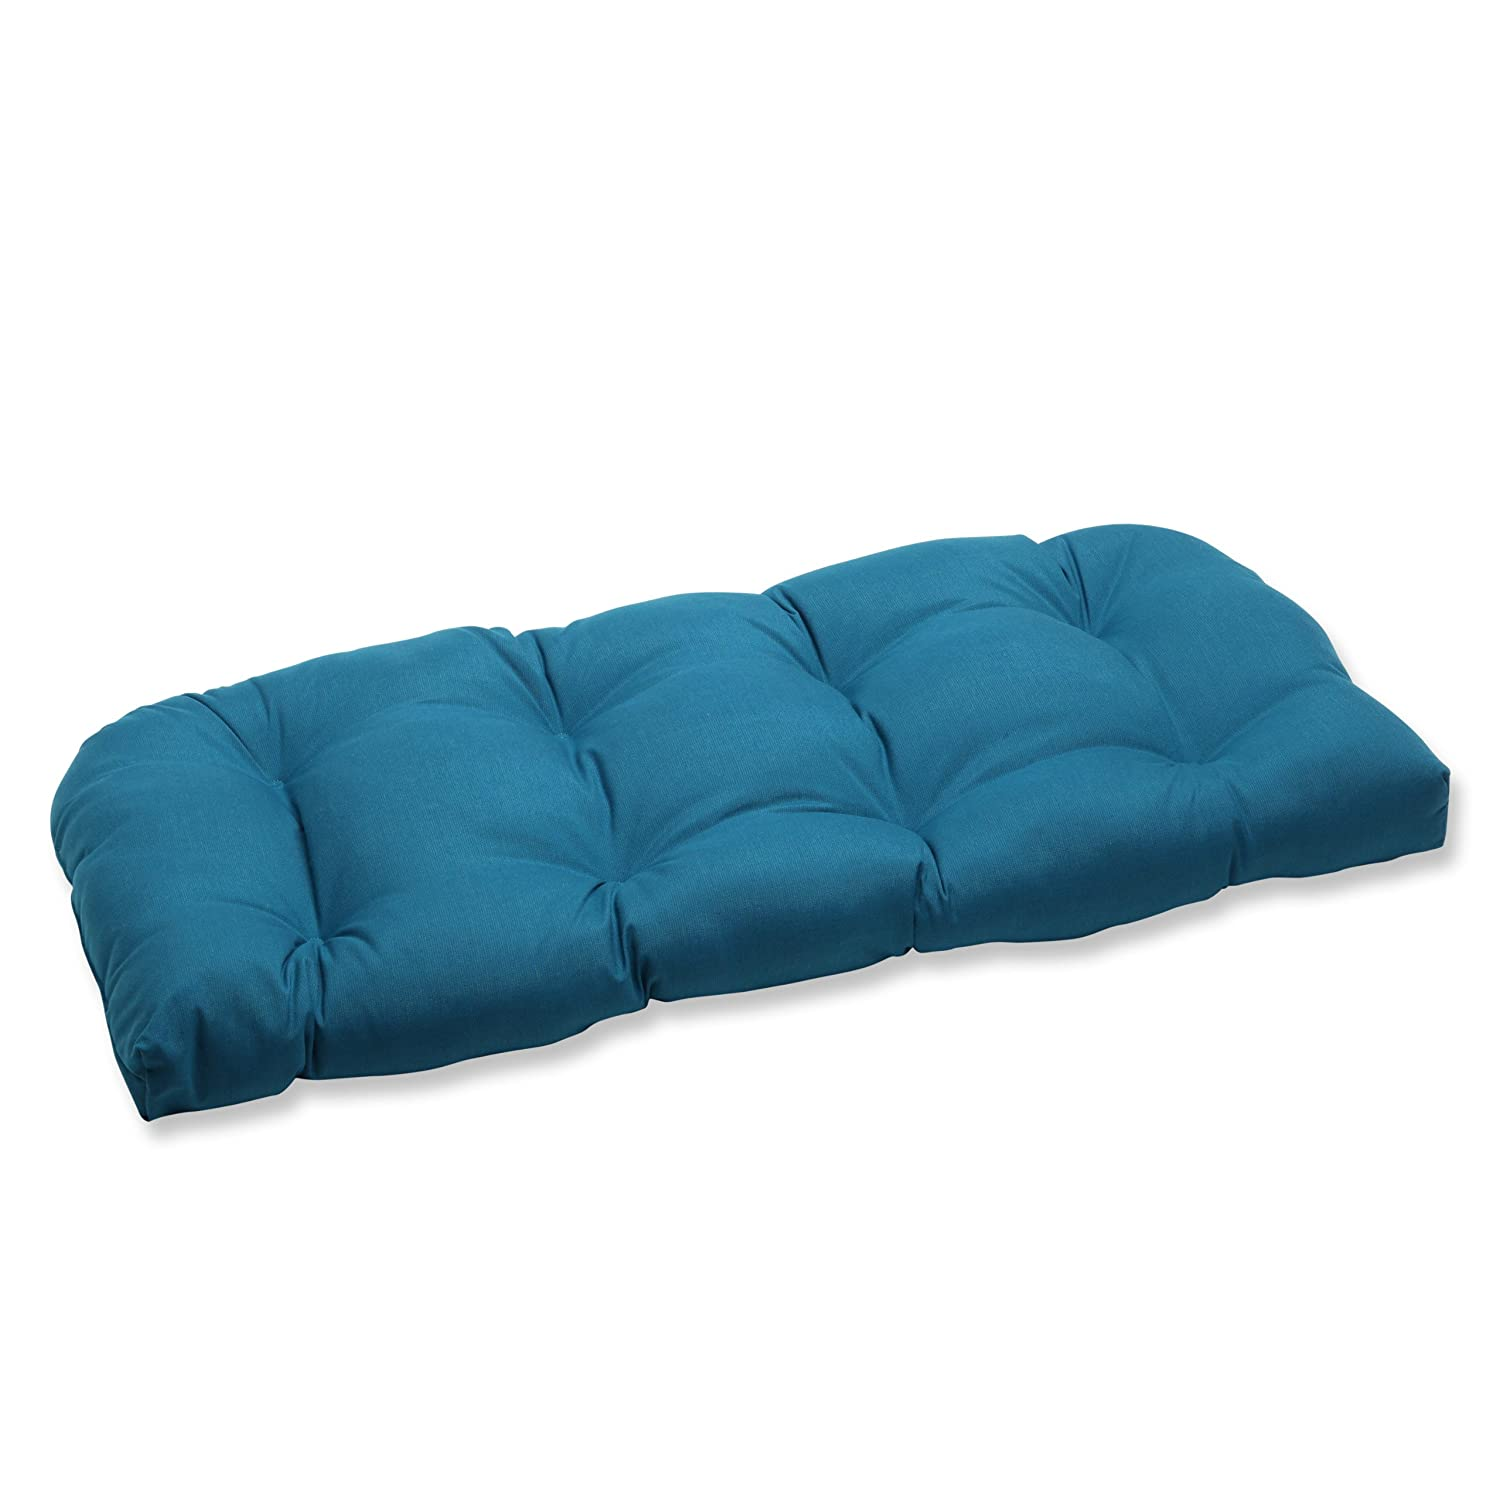 Pillow Perfect Indoor Outdoor Wicker Loveseat Cushion with Sunbrella Spectrum Peacock Fabric, 44 in. L X 19 in. W X 5 in. D